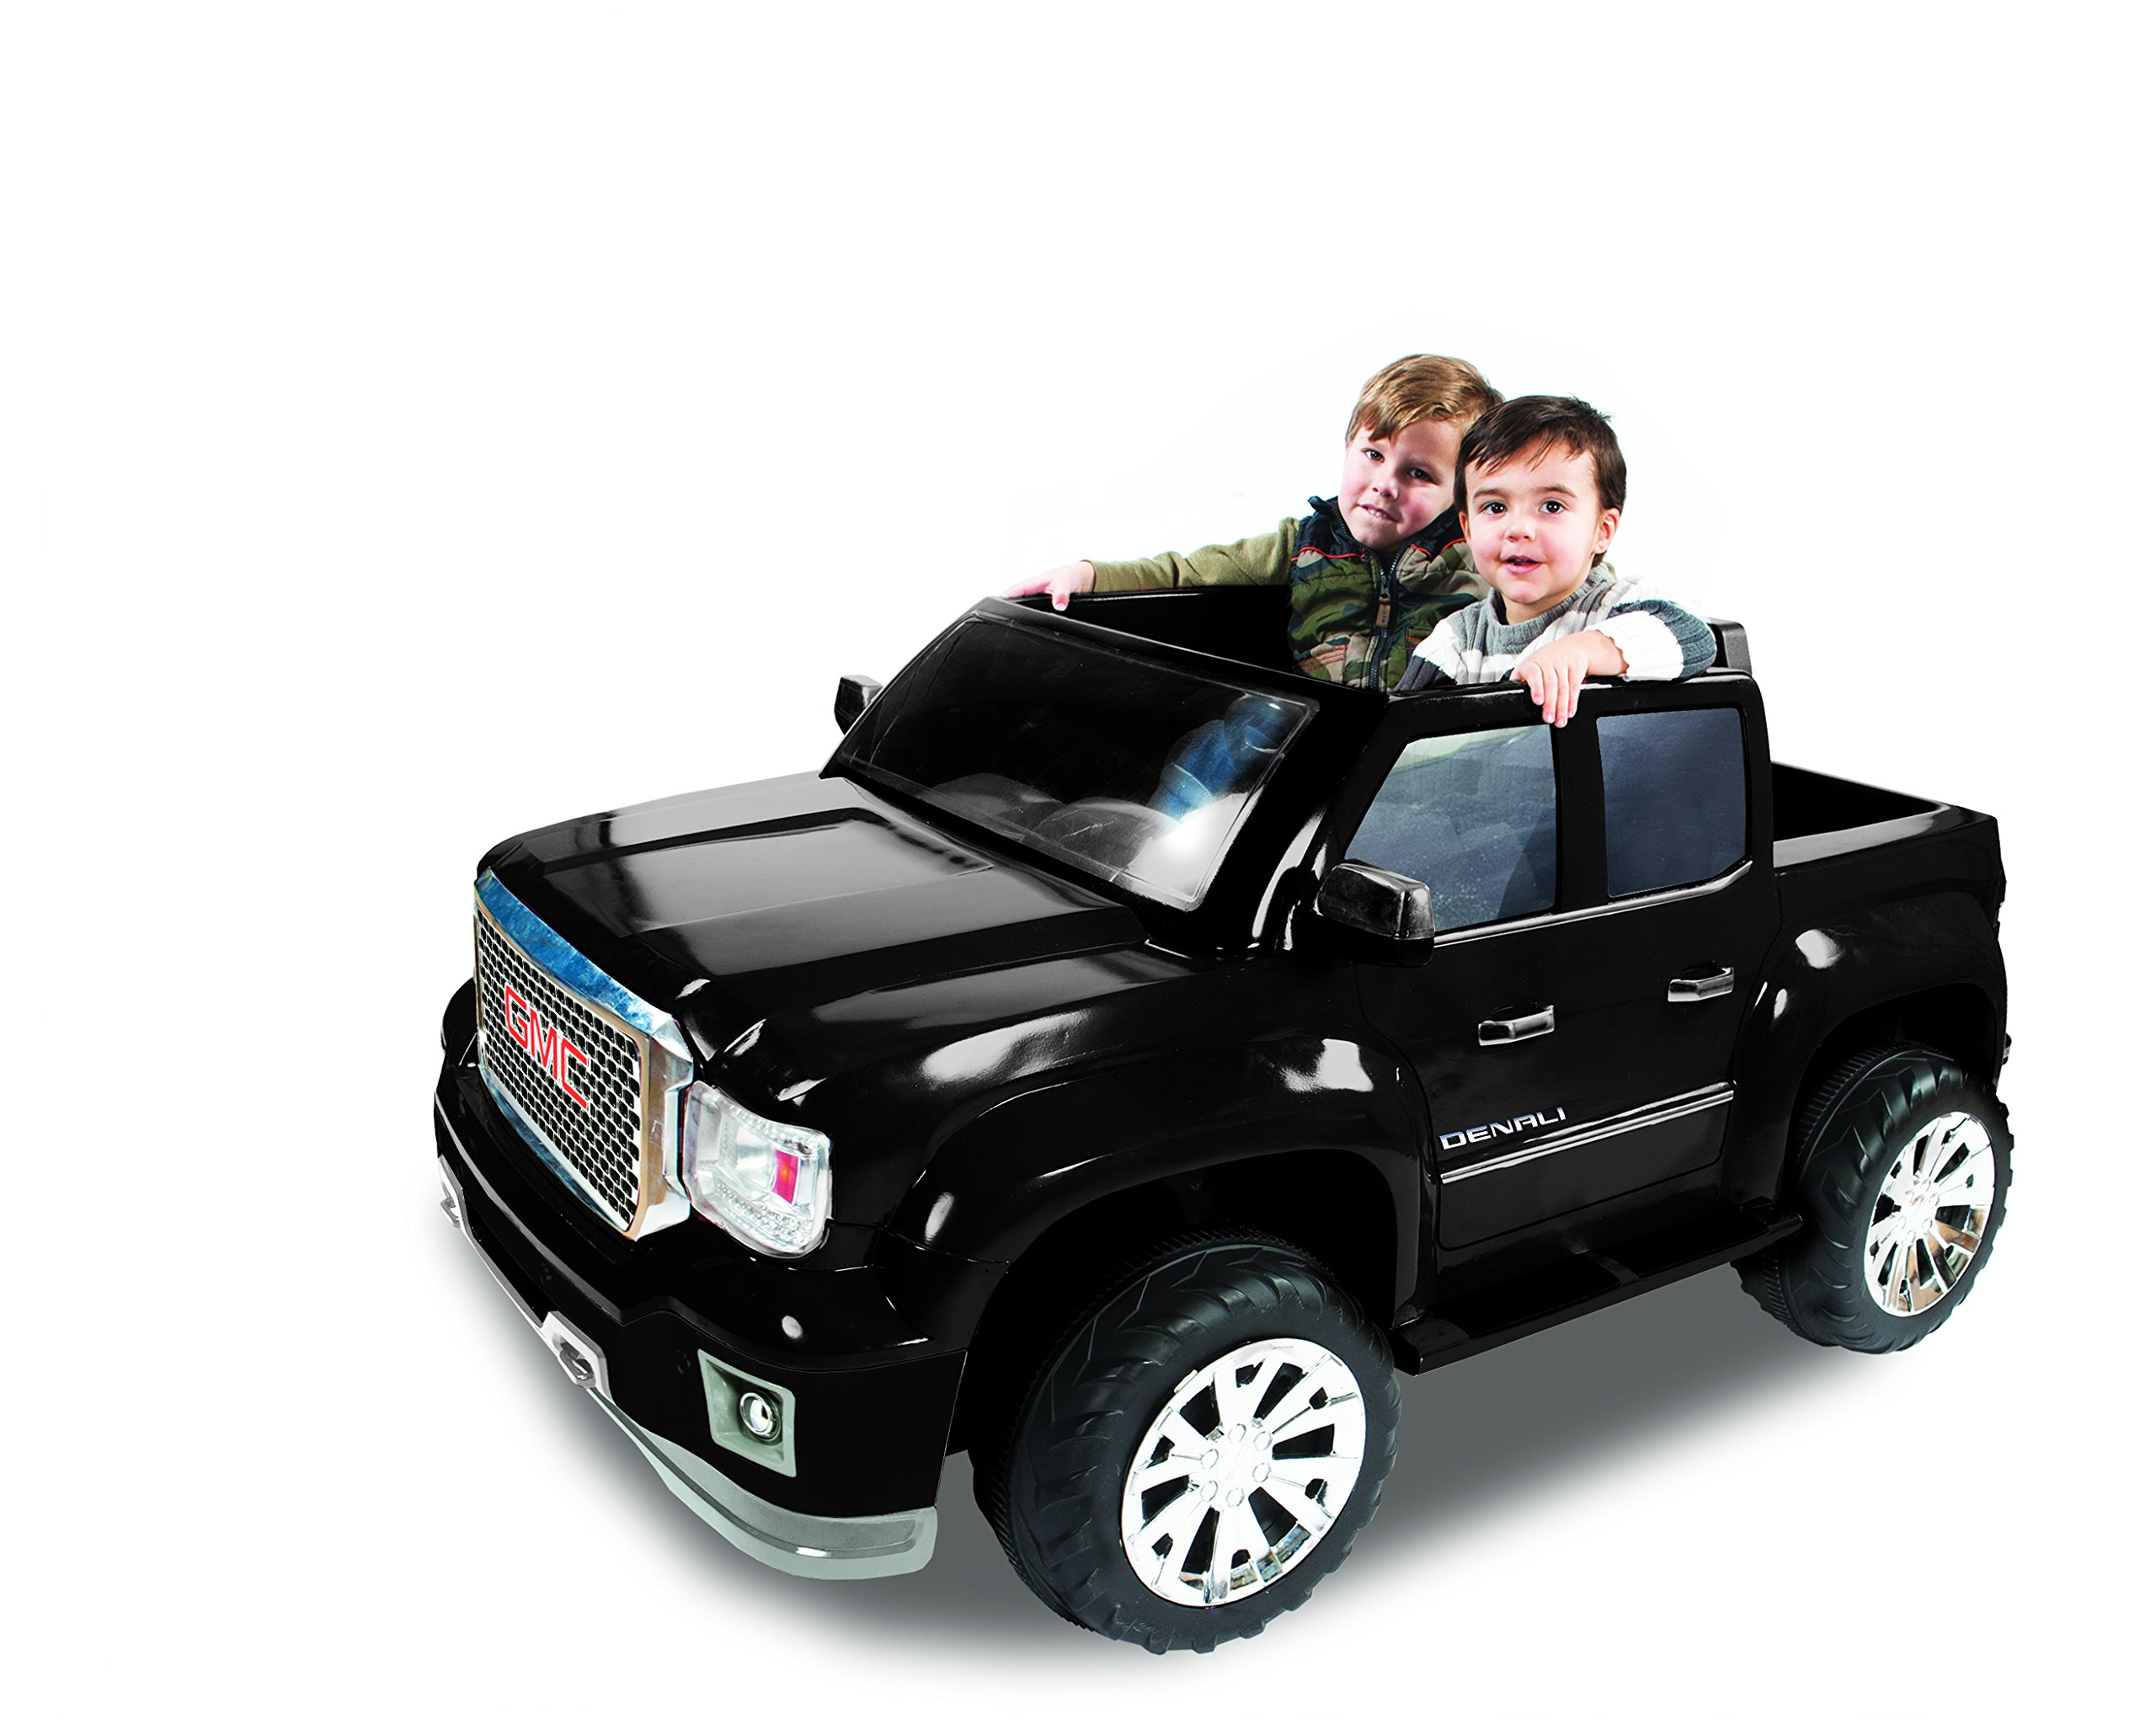 Rollplay GMC Sierra Denali 12-Volt Battery-Powered Ride-On, Black by Rollplay (Image #4)